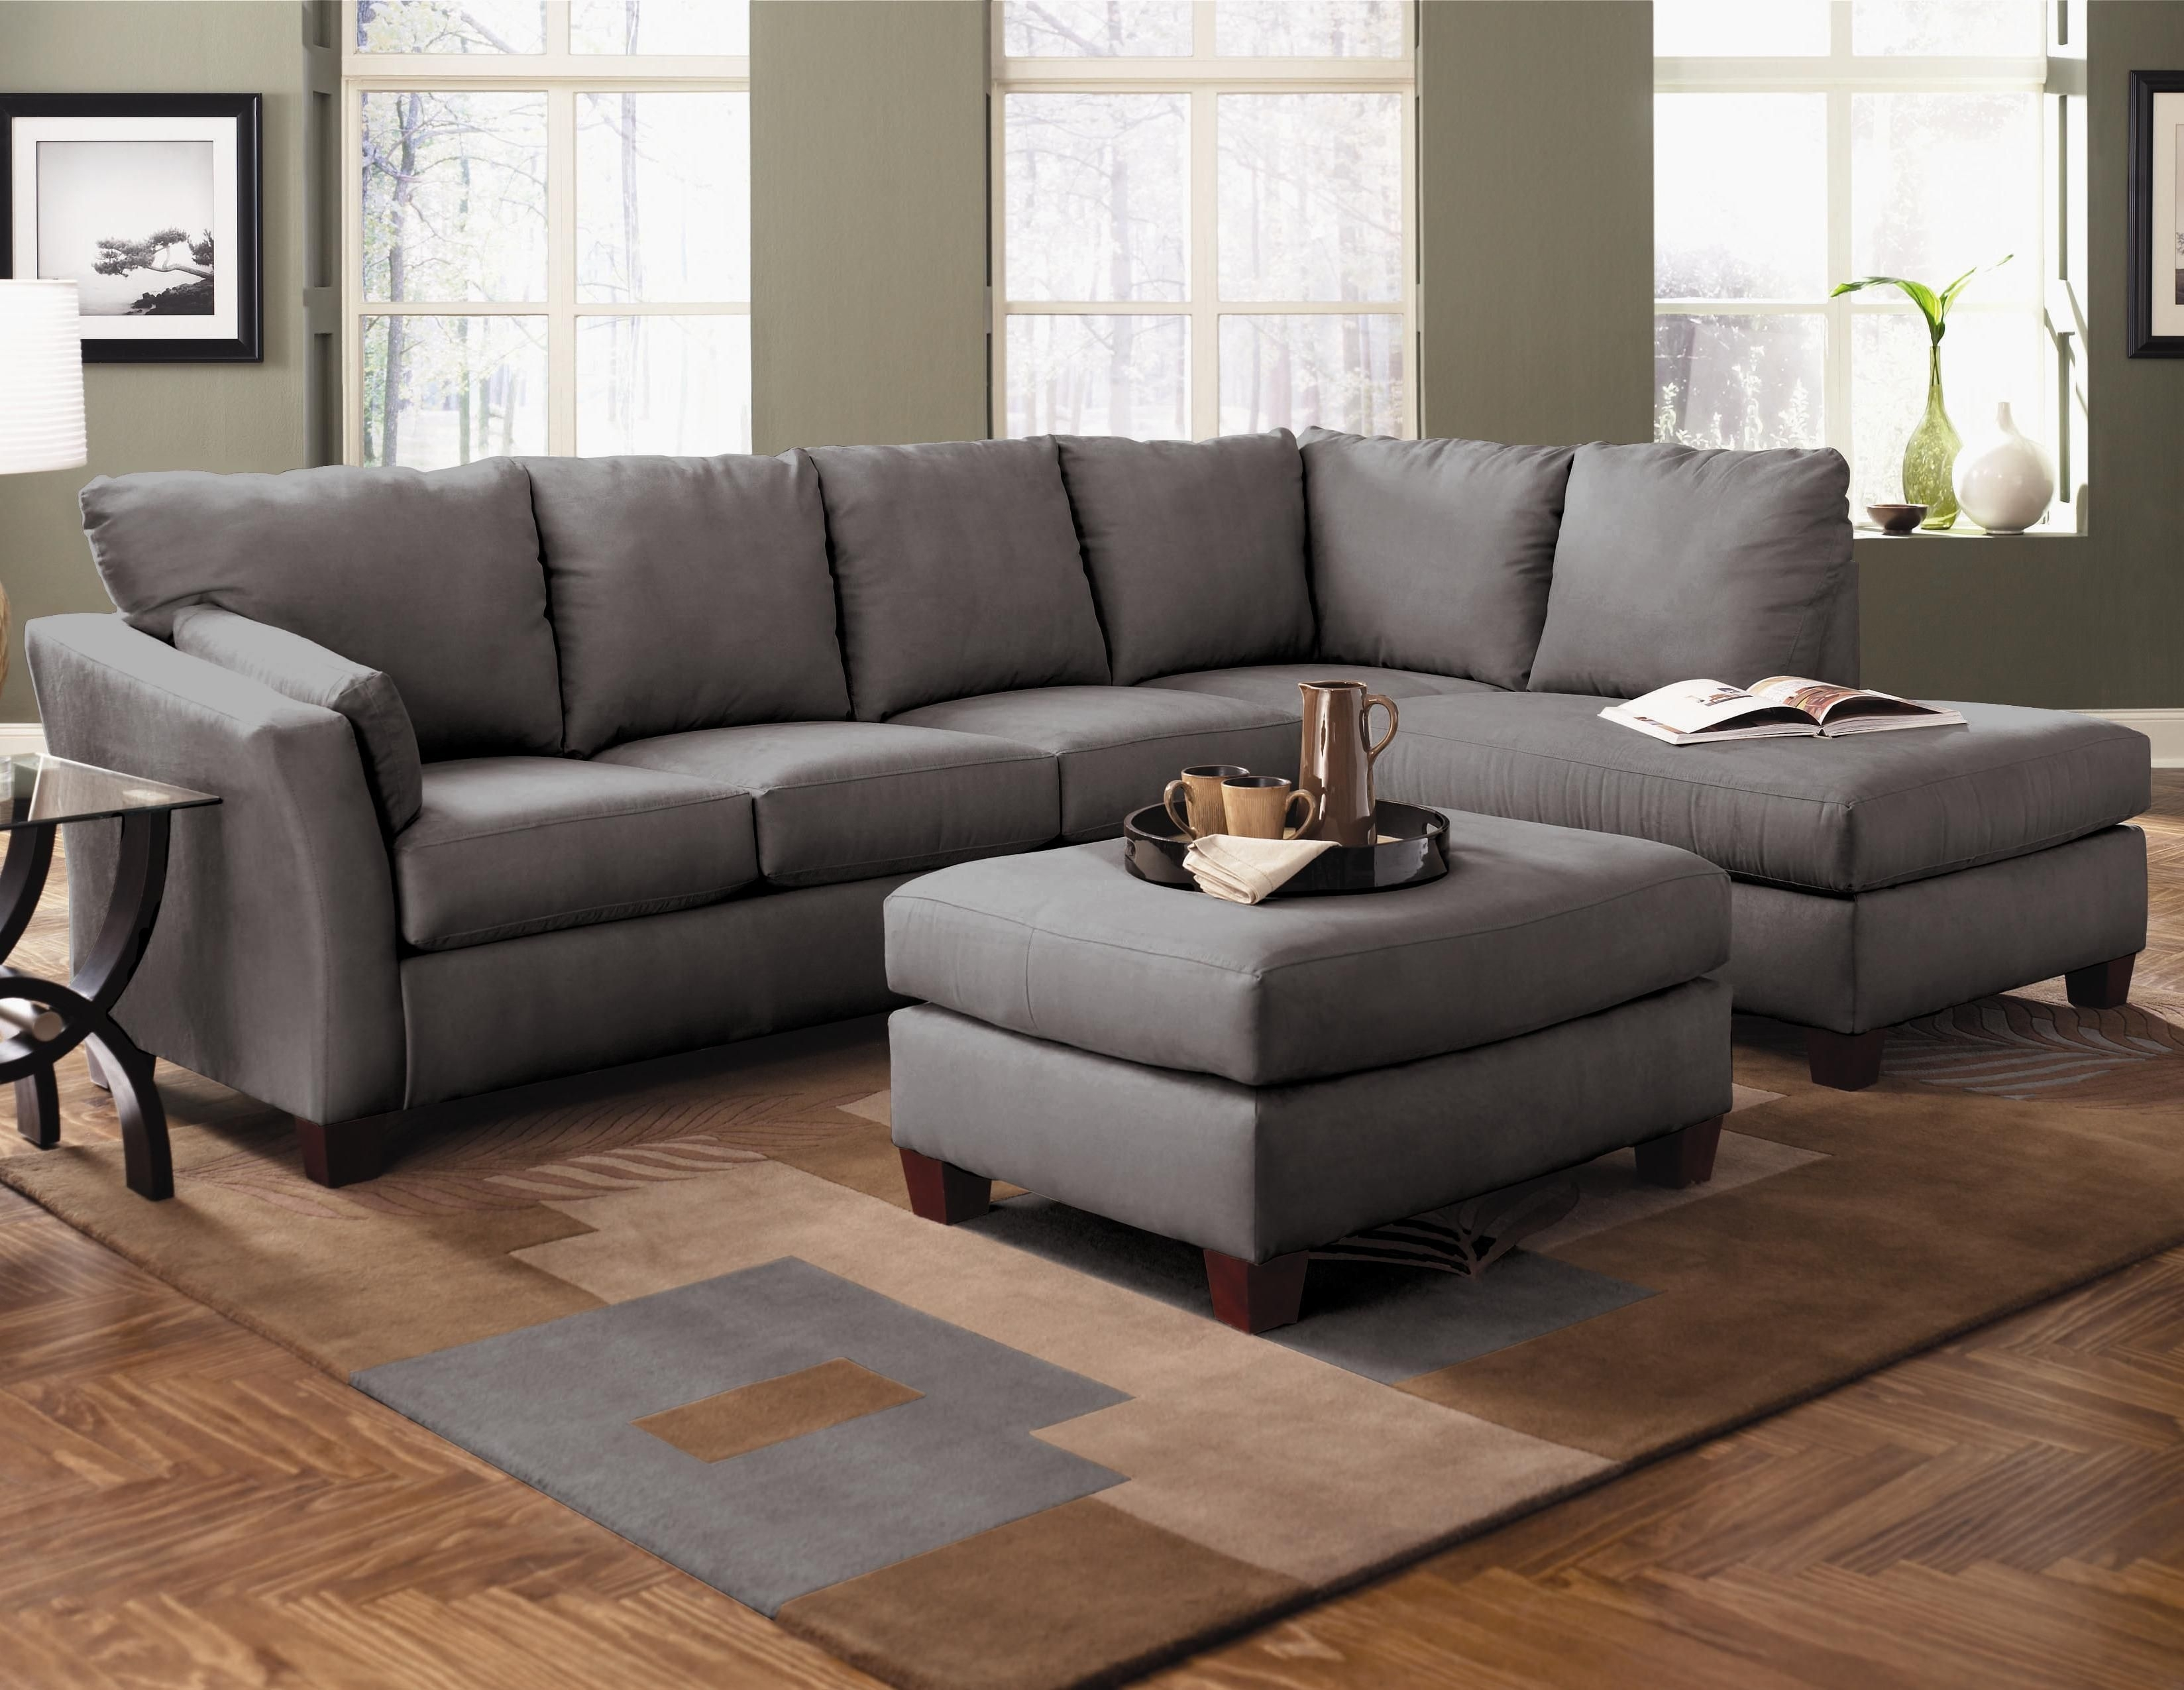 Featured Image of Johnny Janosik Sectional Sofas